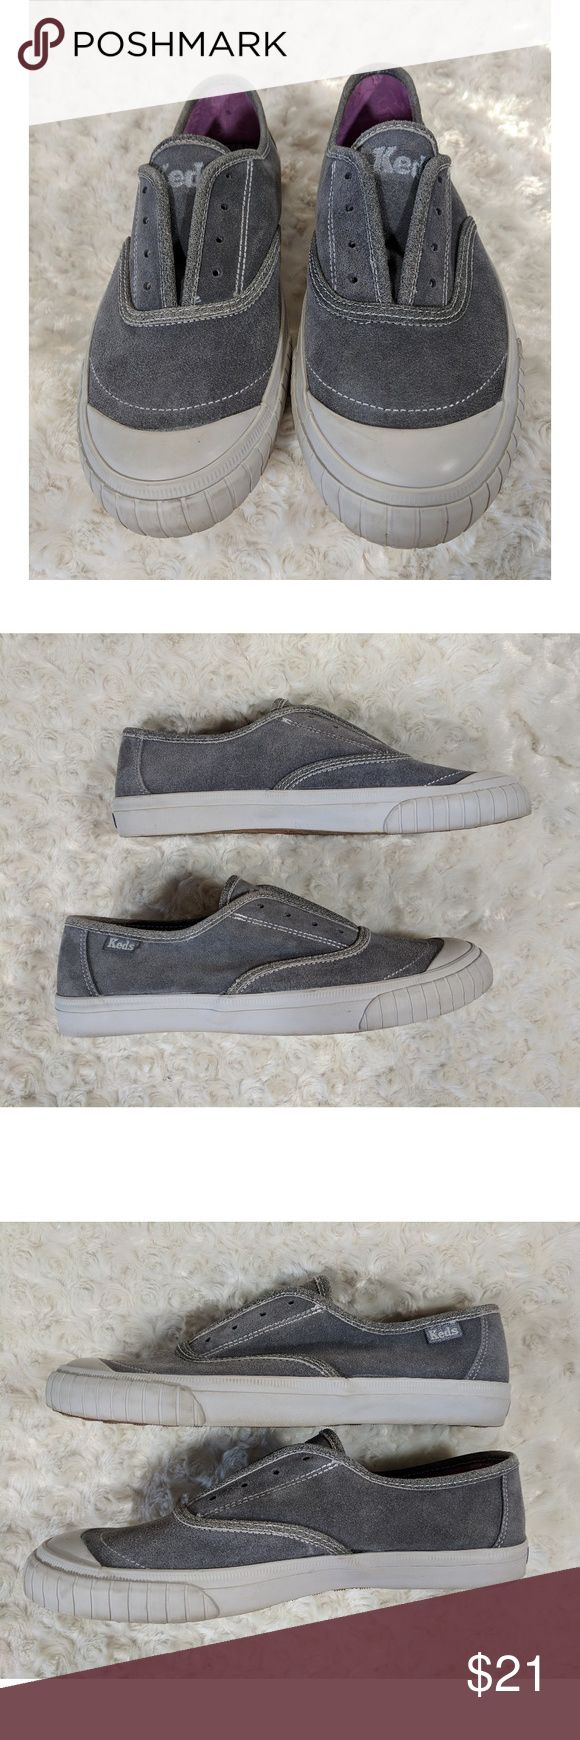 Keds gray leather suede slip on sneakers EUC grey leather suede laceless slip-on Keds.  Elastic is attached to either side of shoe tongue to keep shoe in place. Please view photographs carefully and don't hesitate to ask for more information. Keds Shoes Sneakers